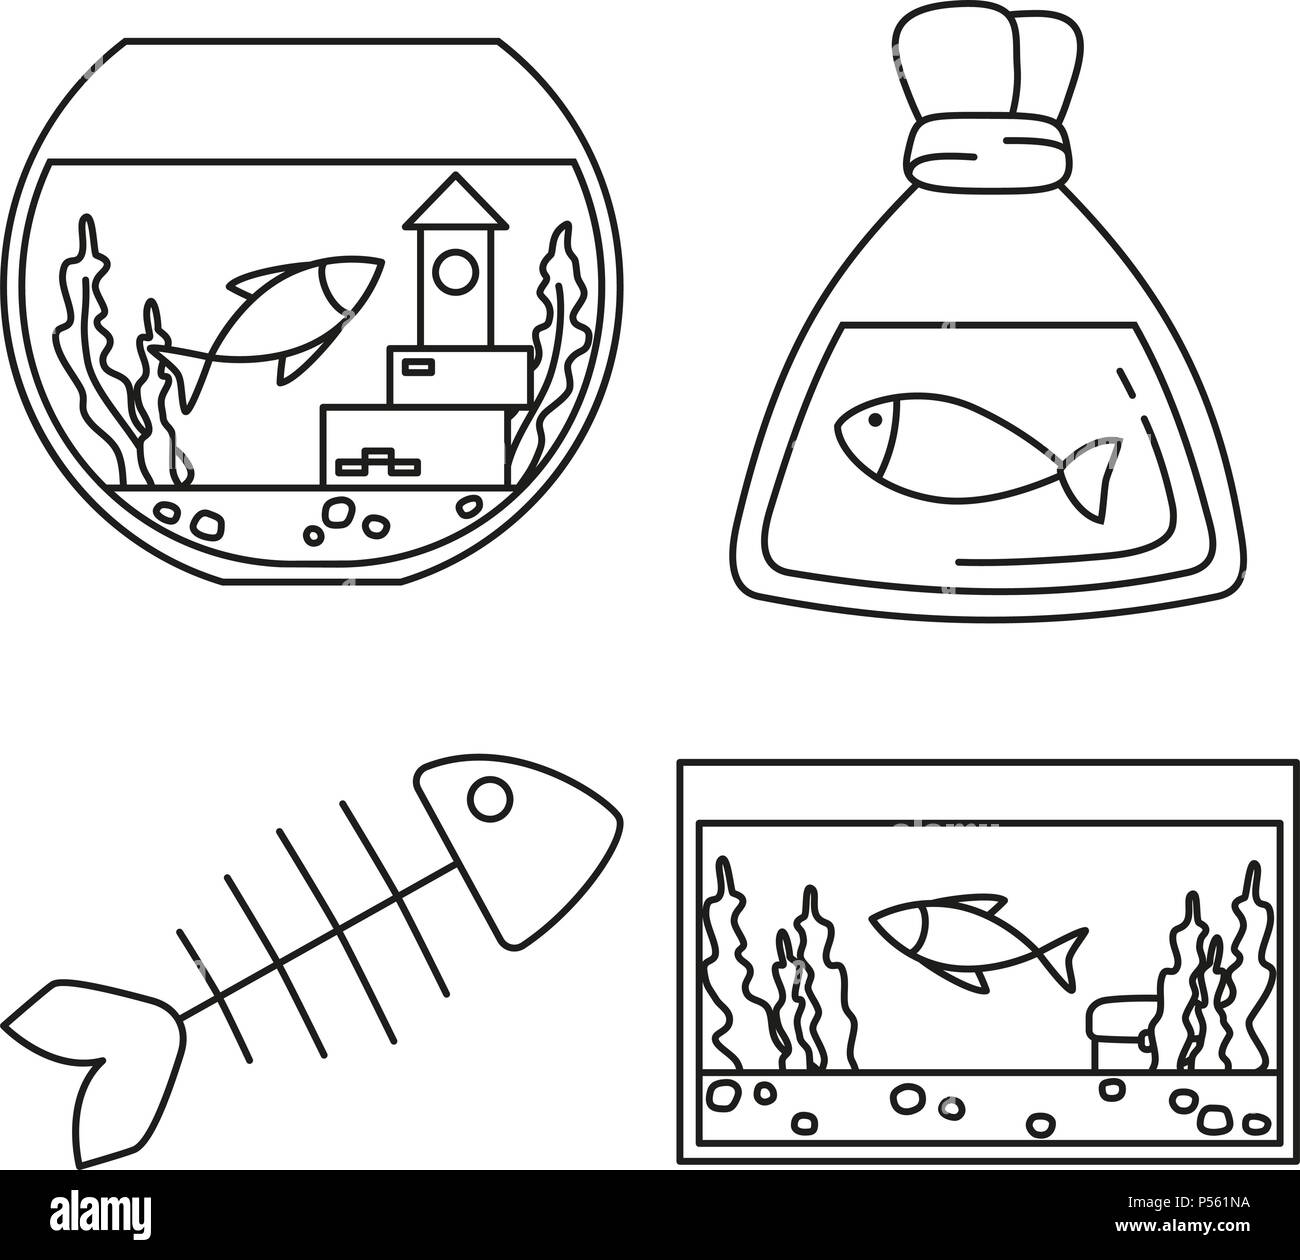 Line art black and white fish elements - Stock Image